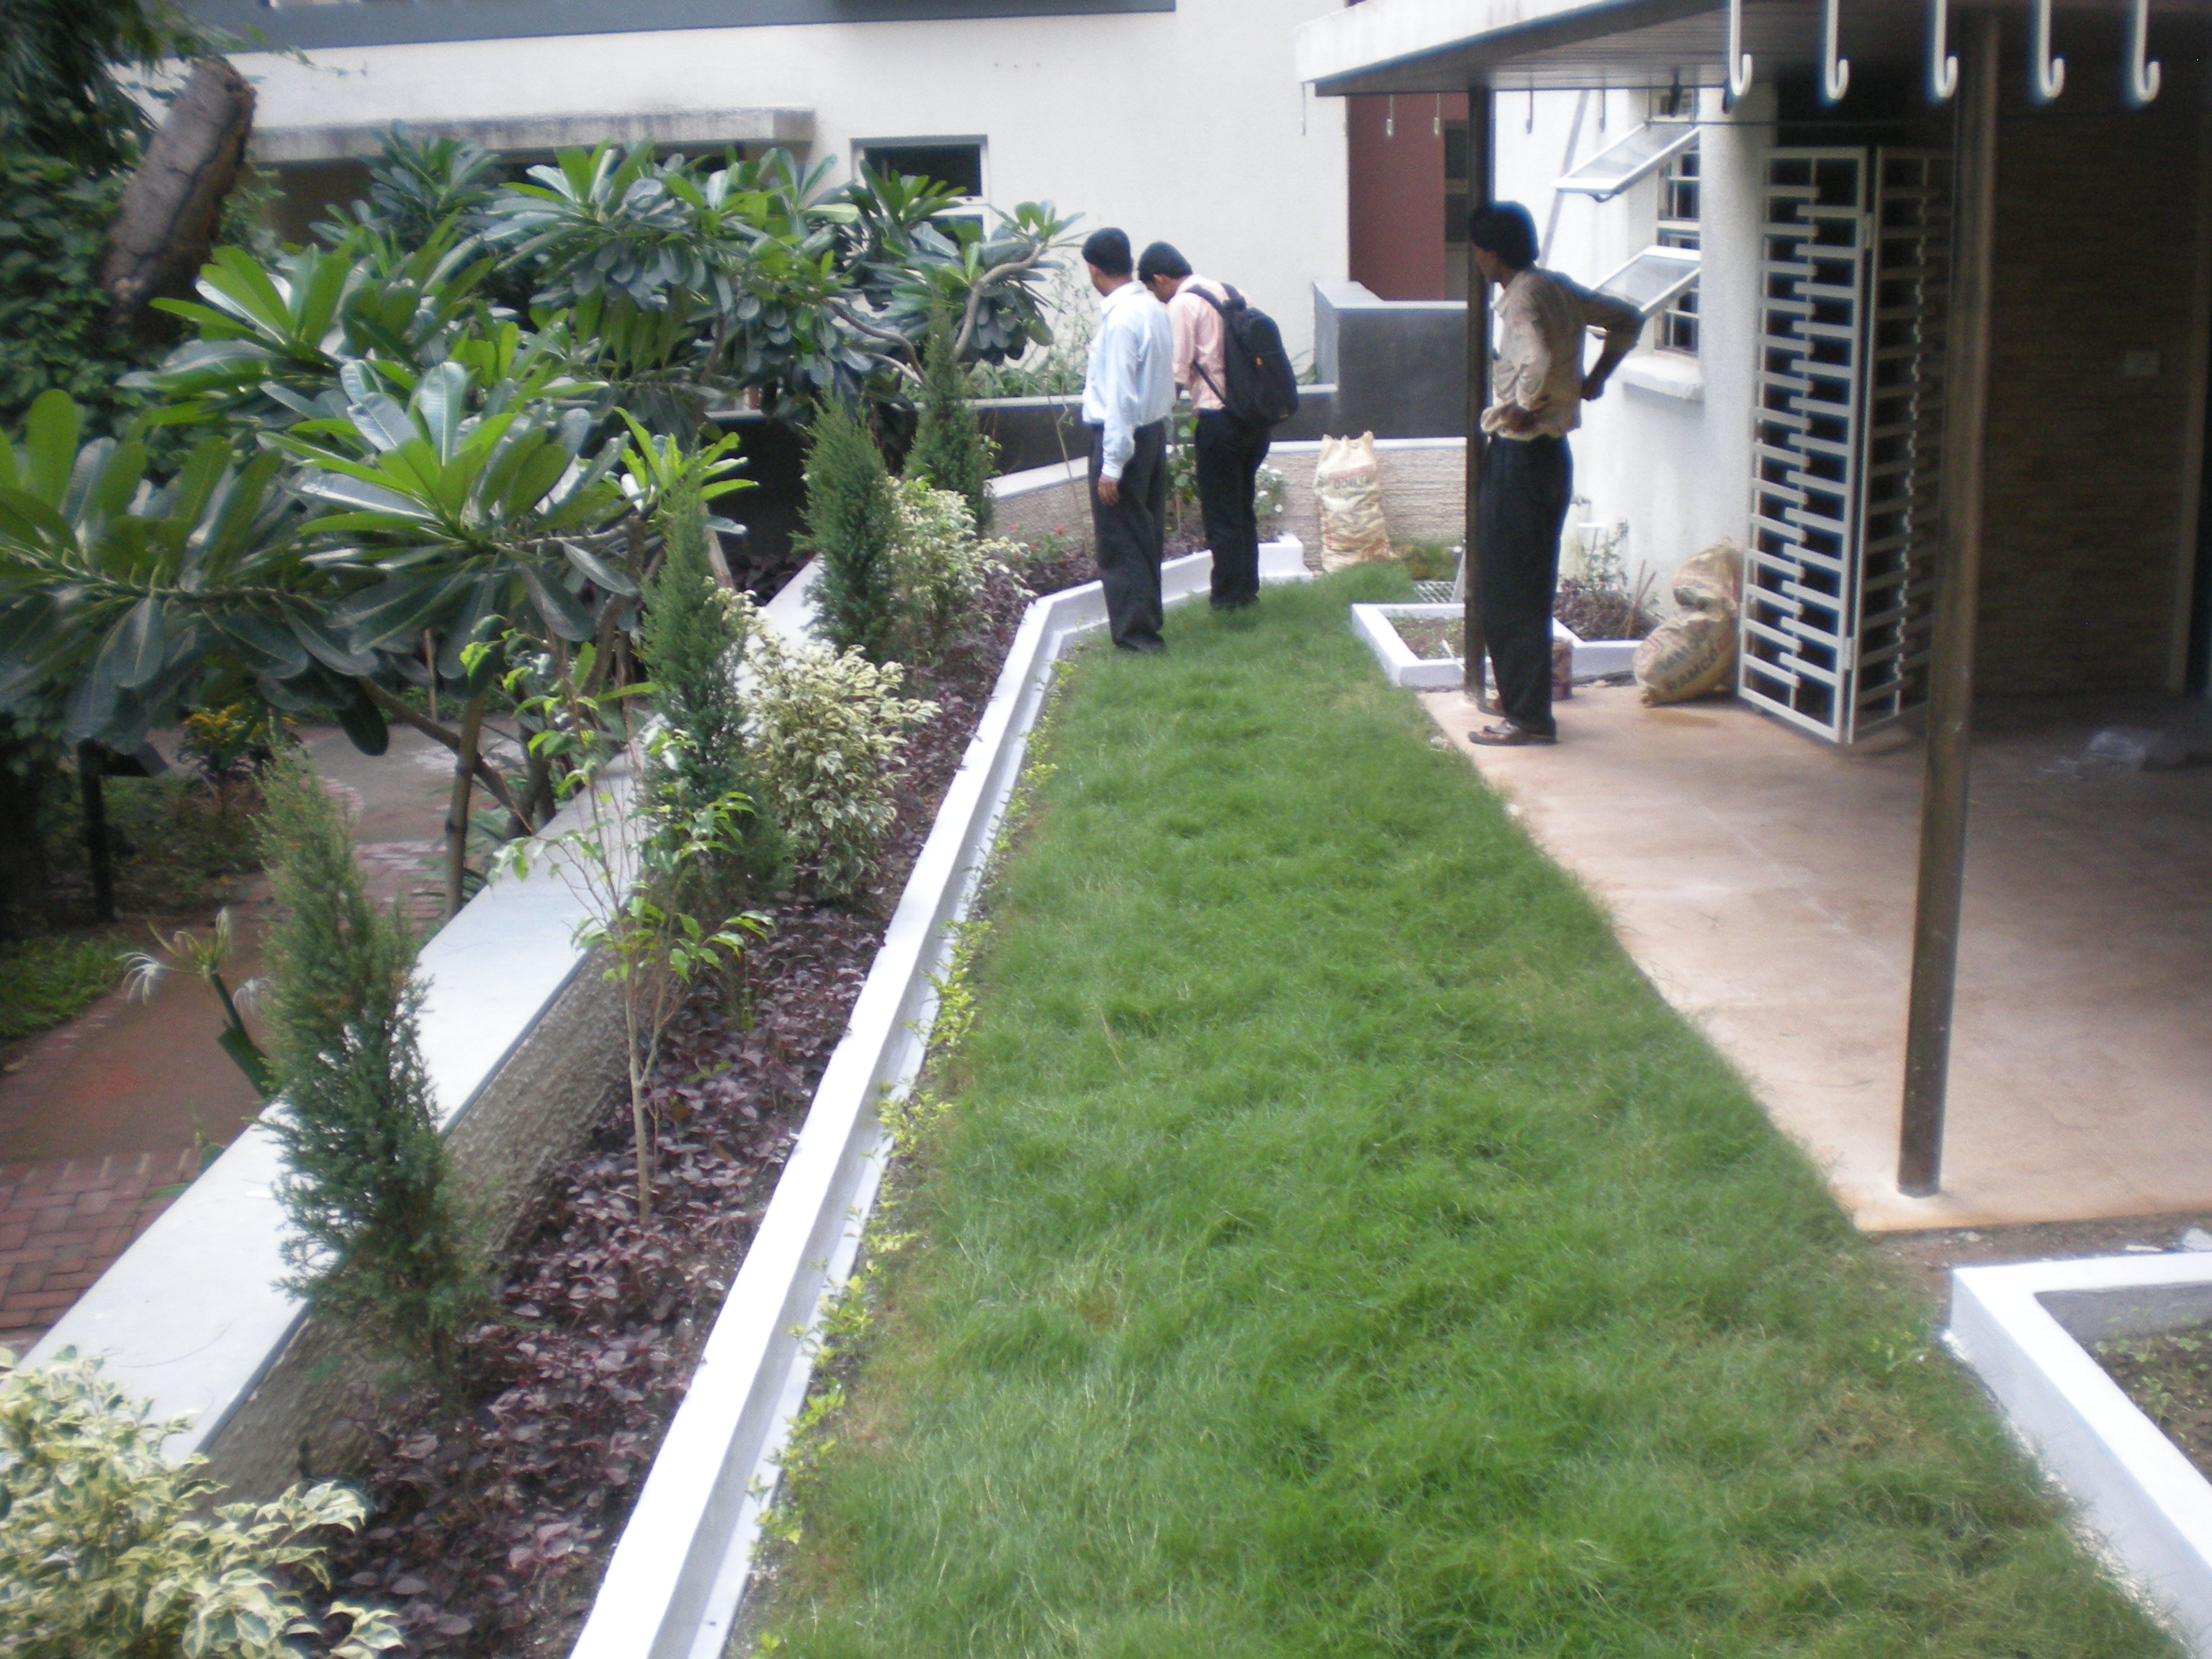 Terrace landscaping sudharma krishi consulantants for Terrace krishi